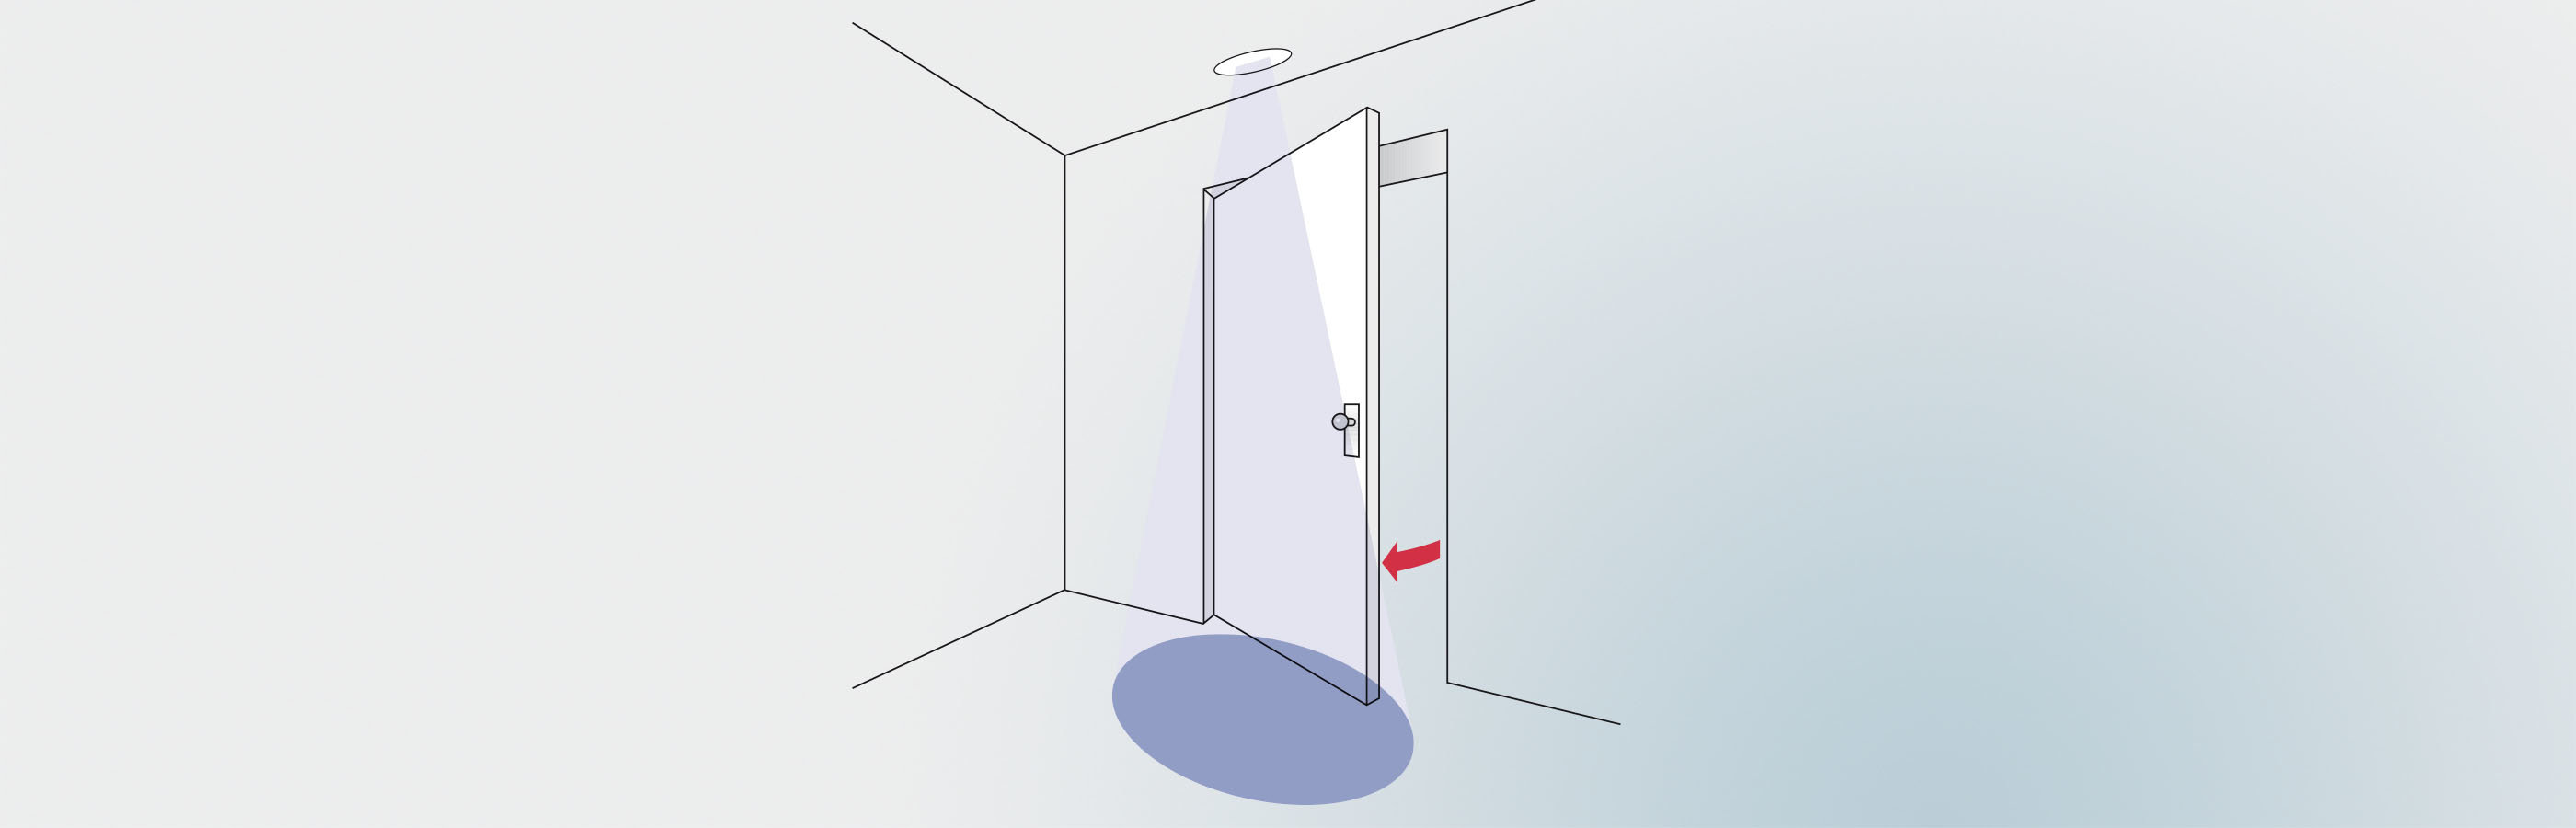 Merkur 2 microwave motion detector opens a swing door